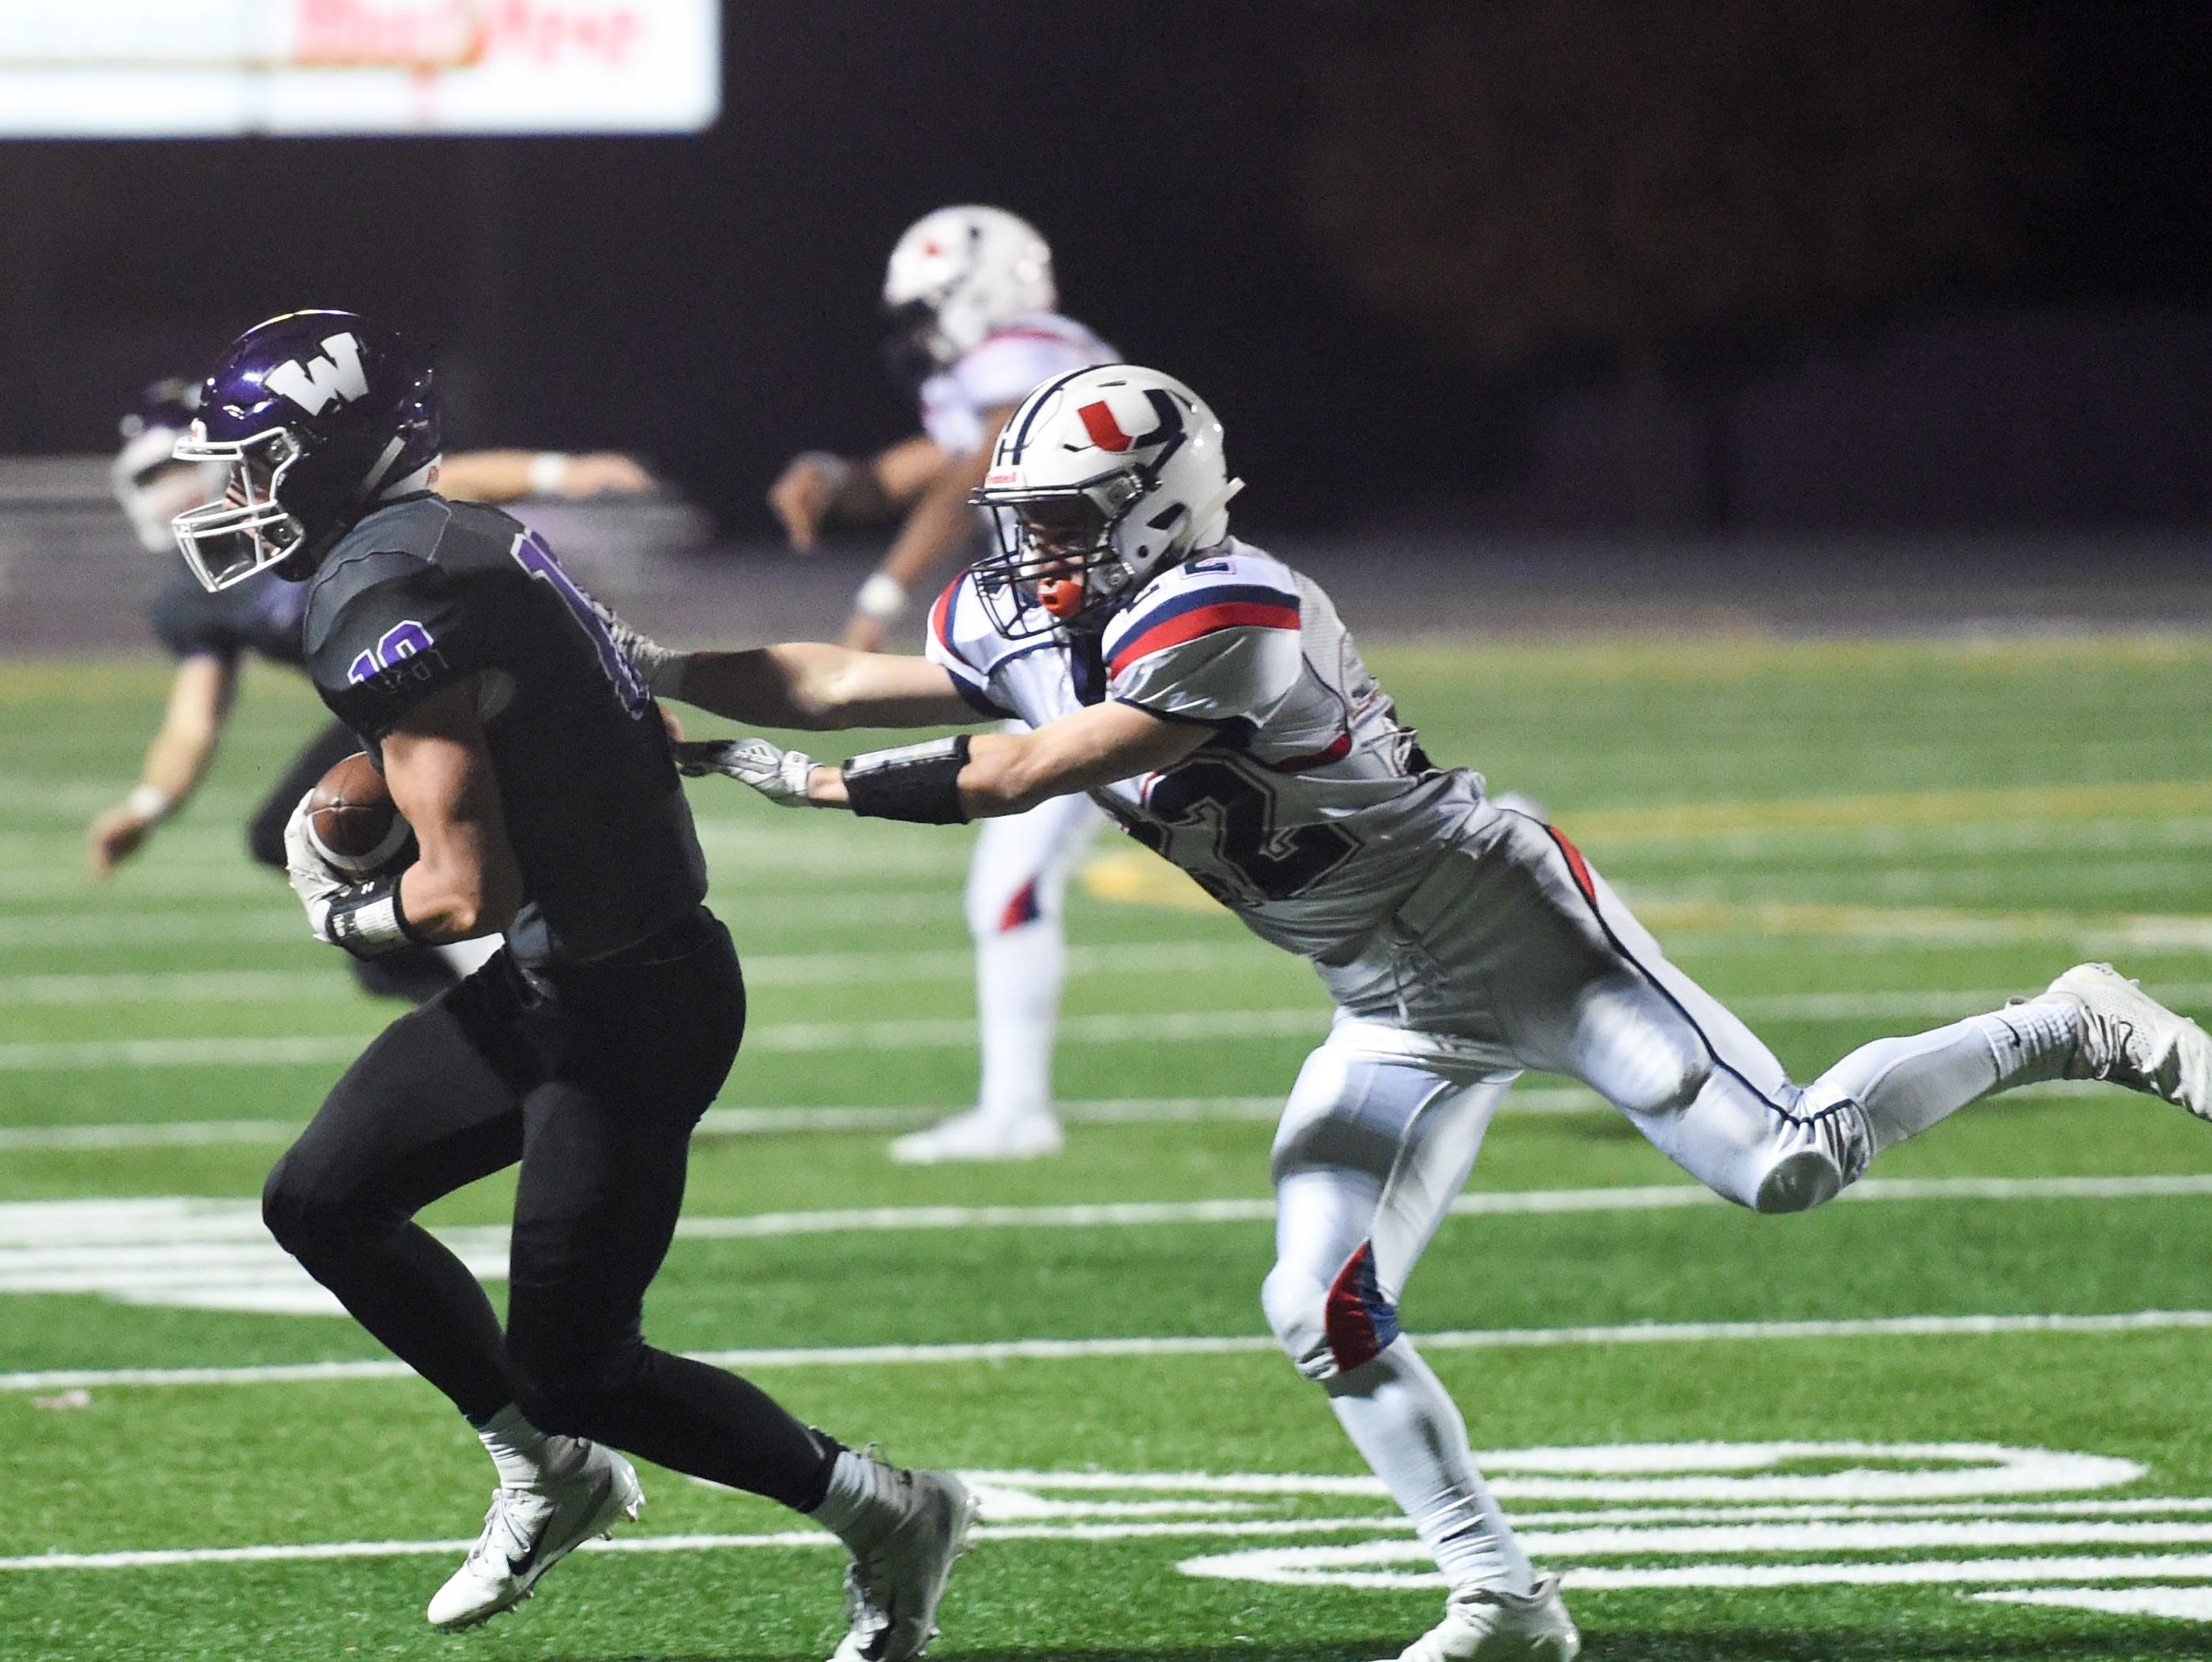 Urbandale's Brook Heinen (22) fights to tackle Waukee's Zach Eaton (18) on Friday, Oct. 26, 2018 during a playoff game between the Waukee Warriors and the Urbandale J-Hawks at Waukee High School.